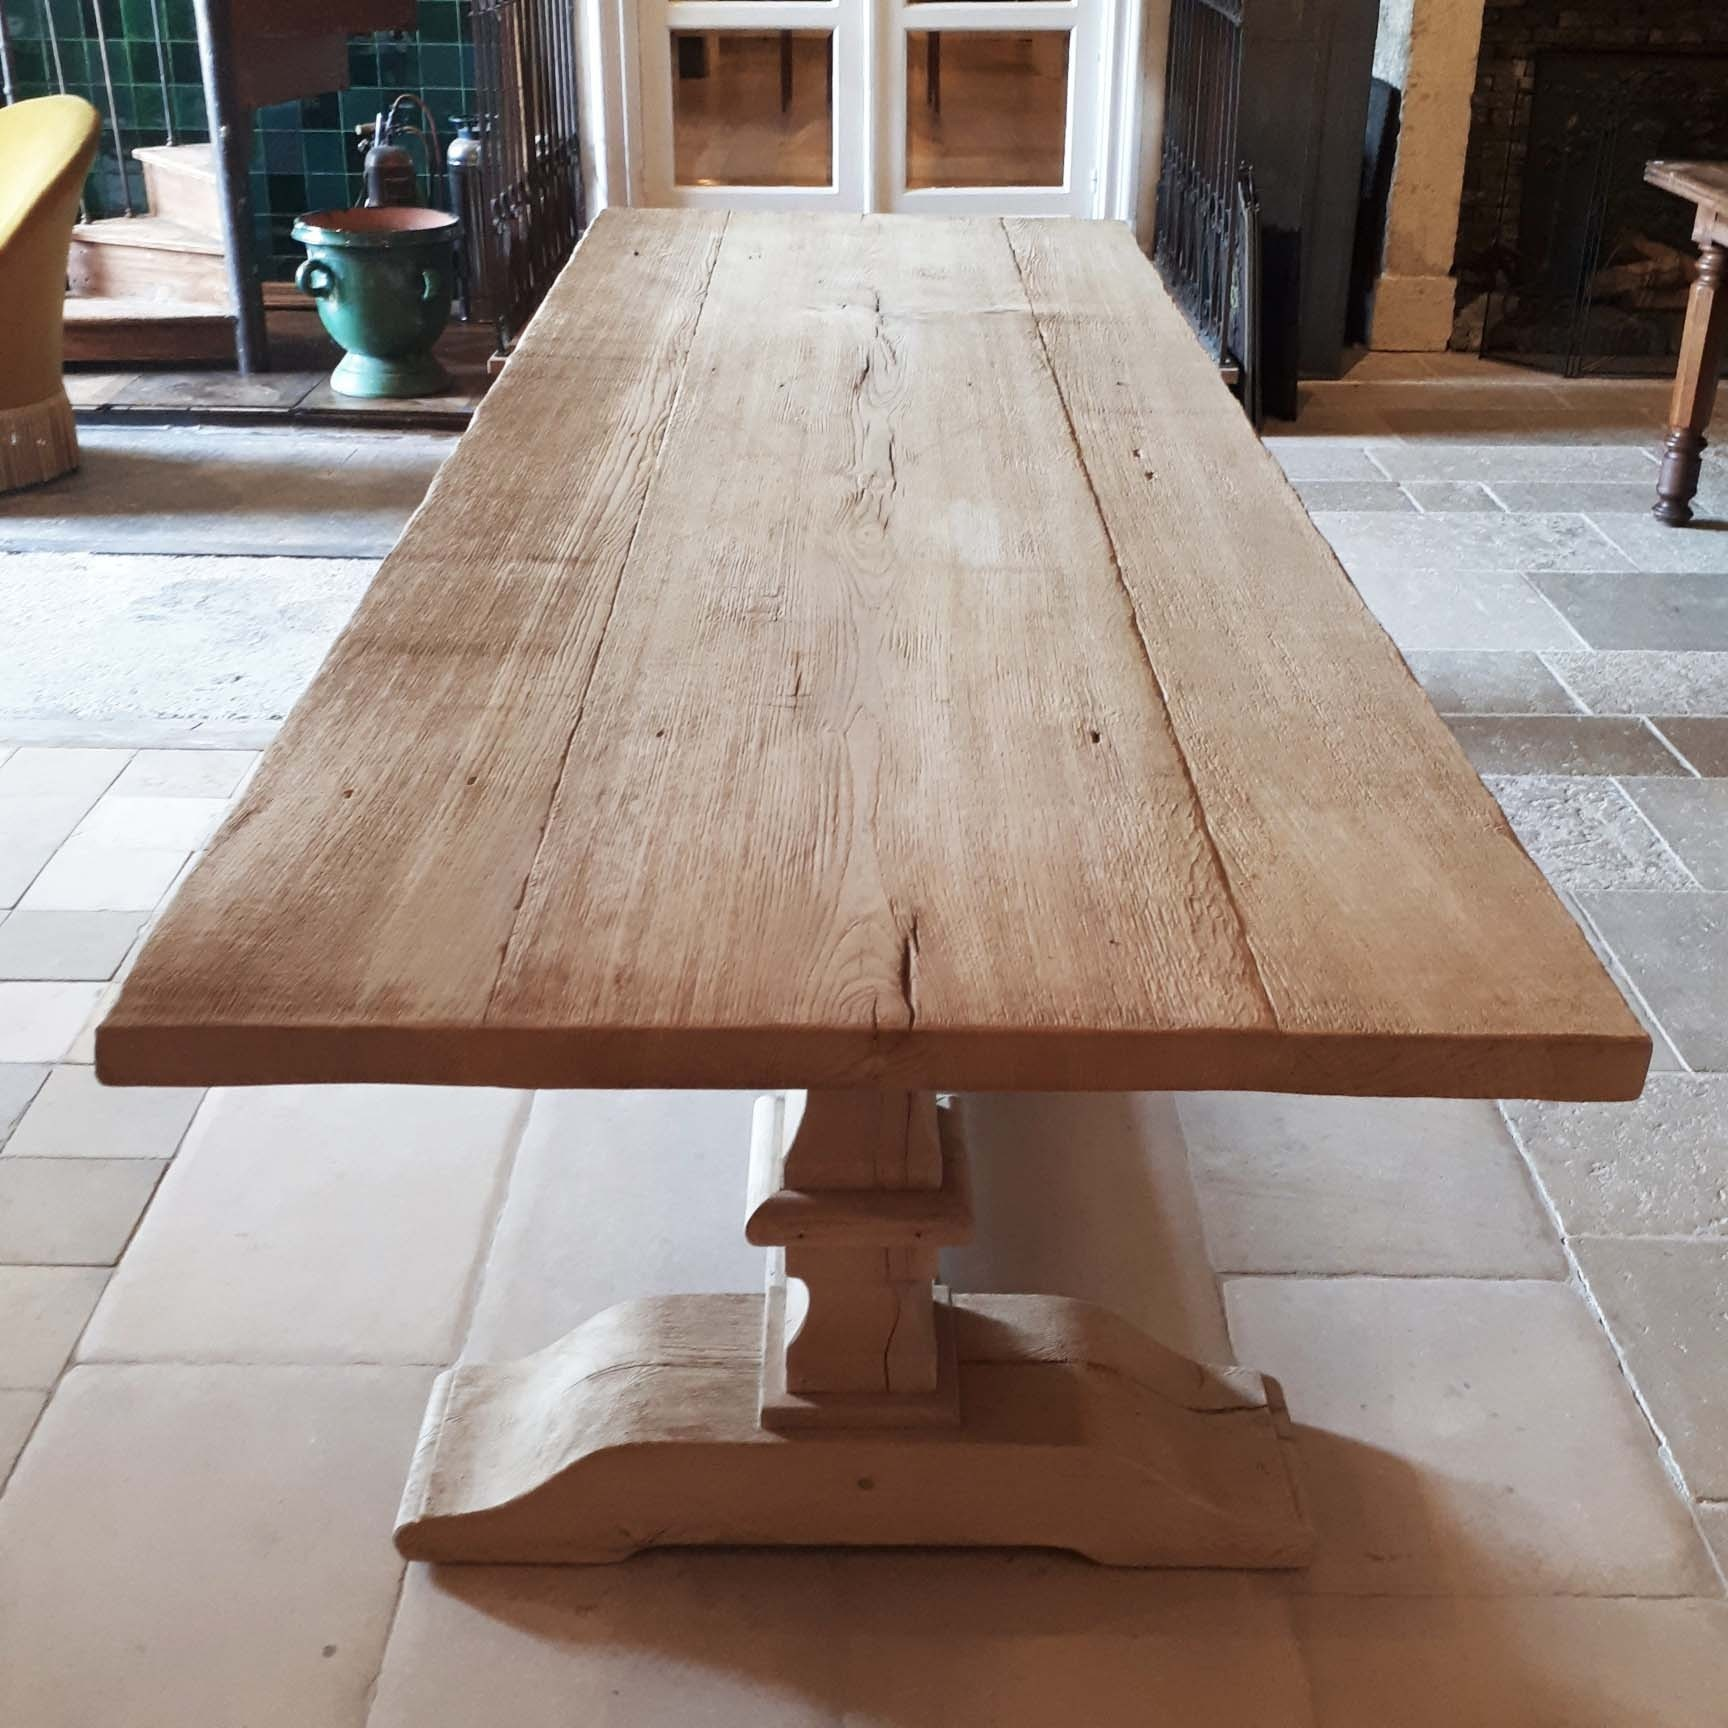 Cloister table made from old oak